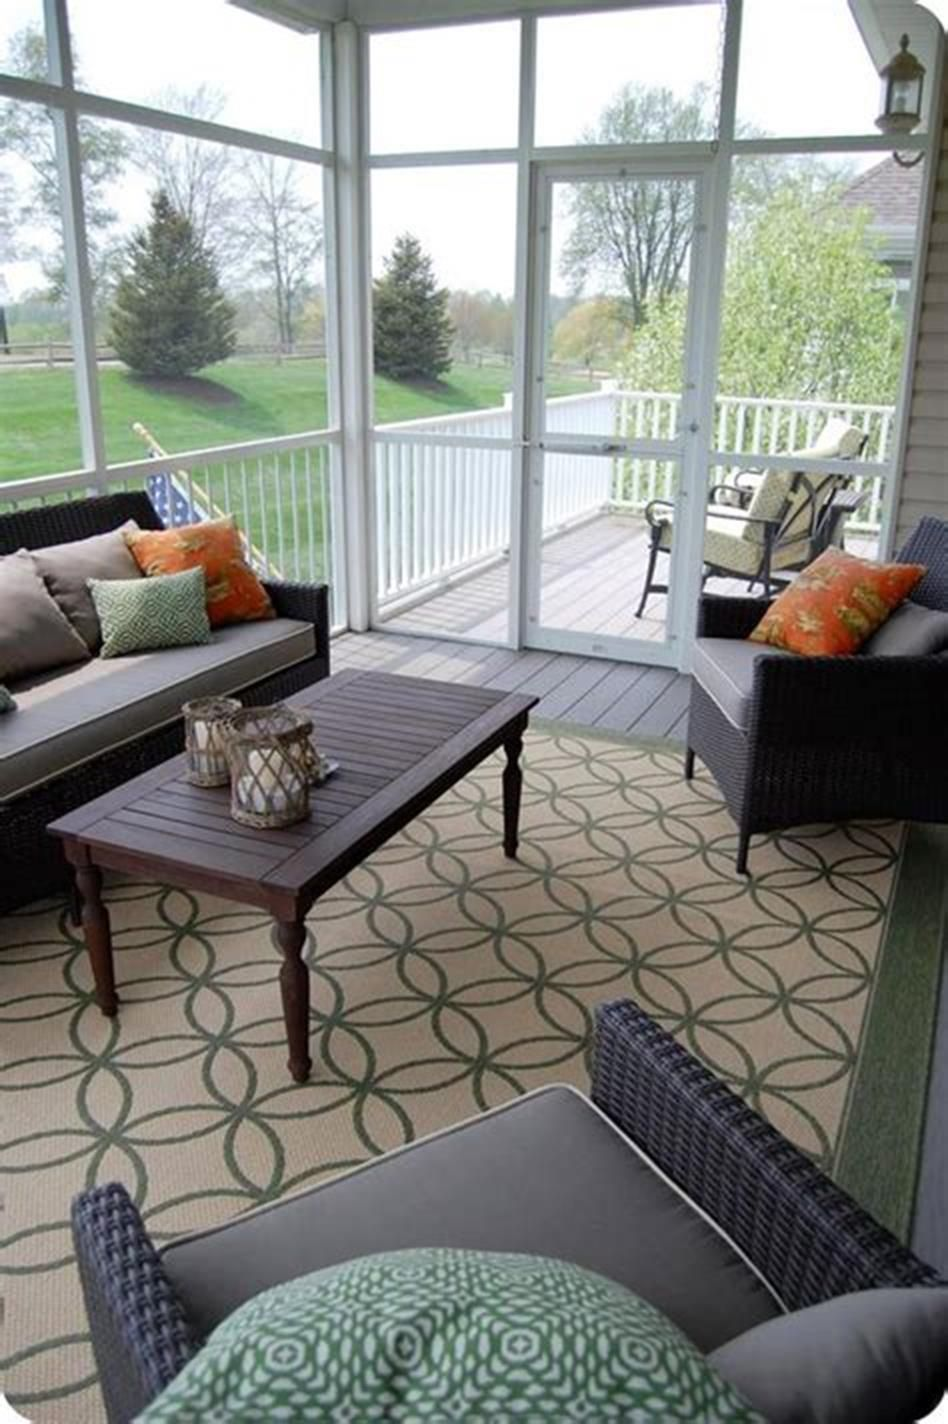 40 Best Screened Porch Design and Decorating Ideas On Budget images